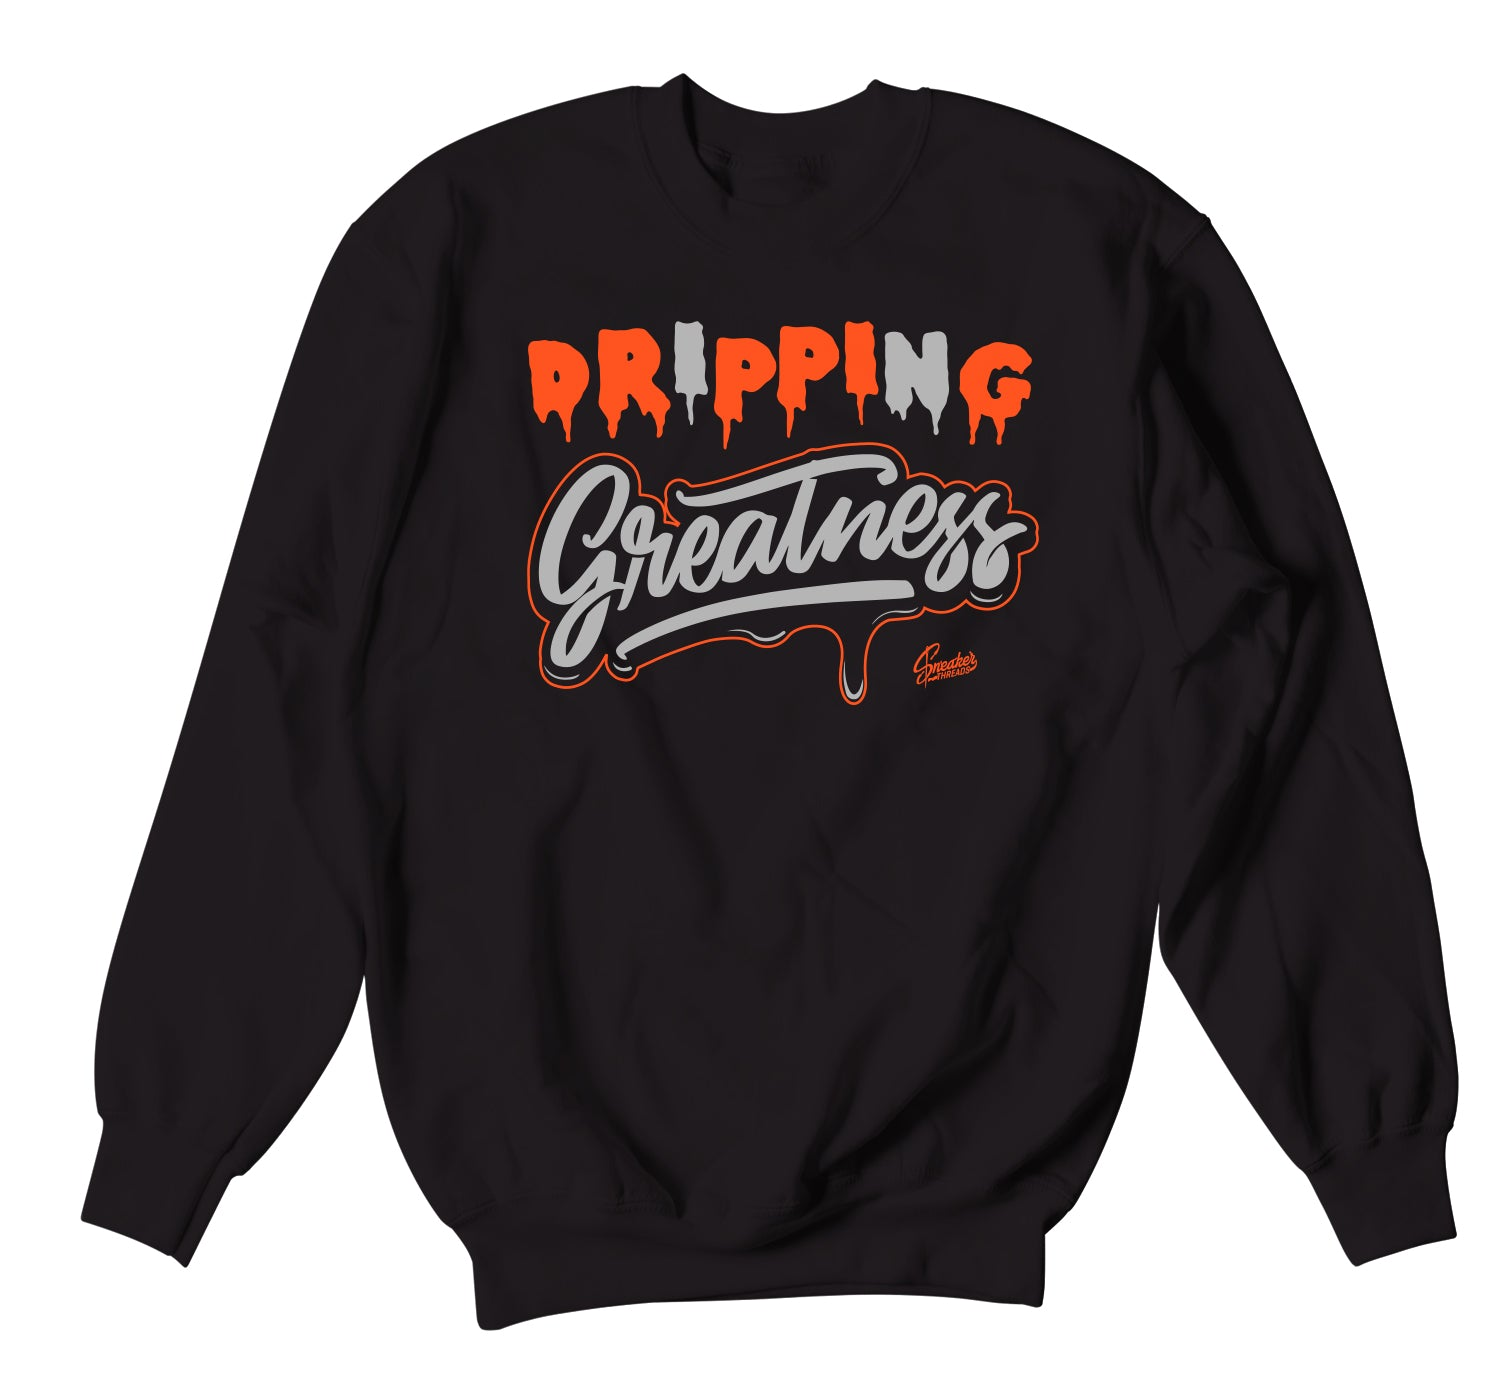 Foamposite Pro Halloween Sweater - Drip Greatness - Black